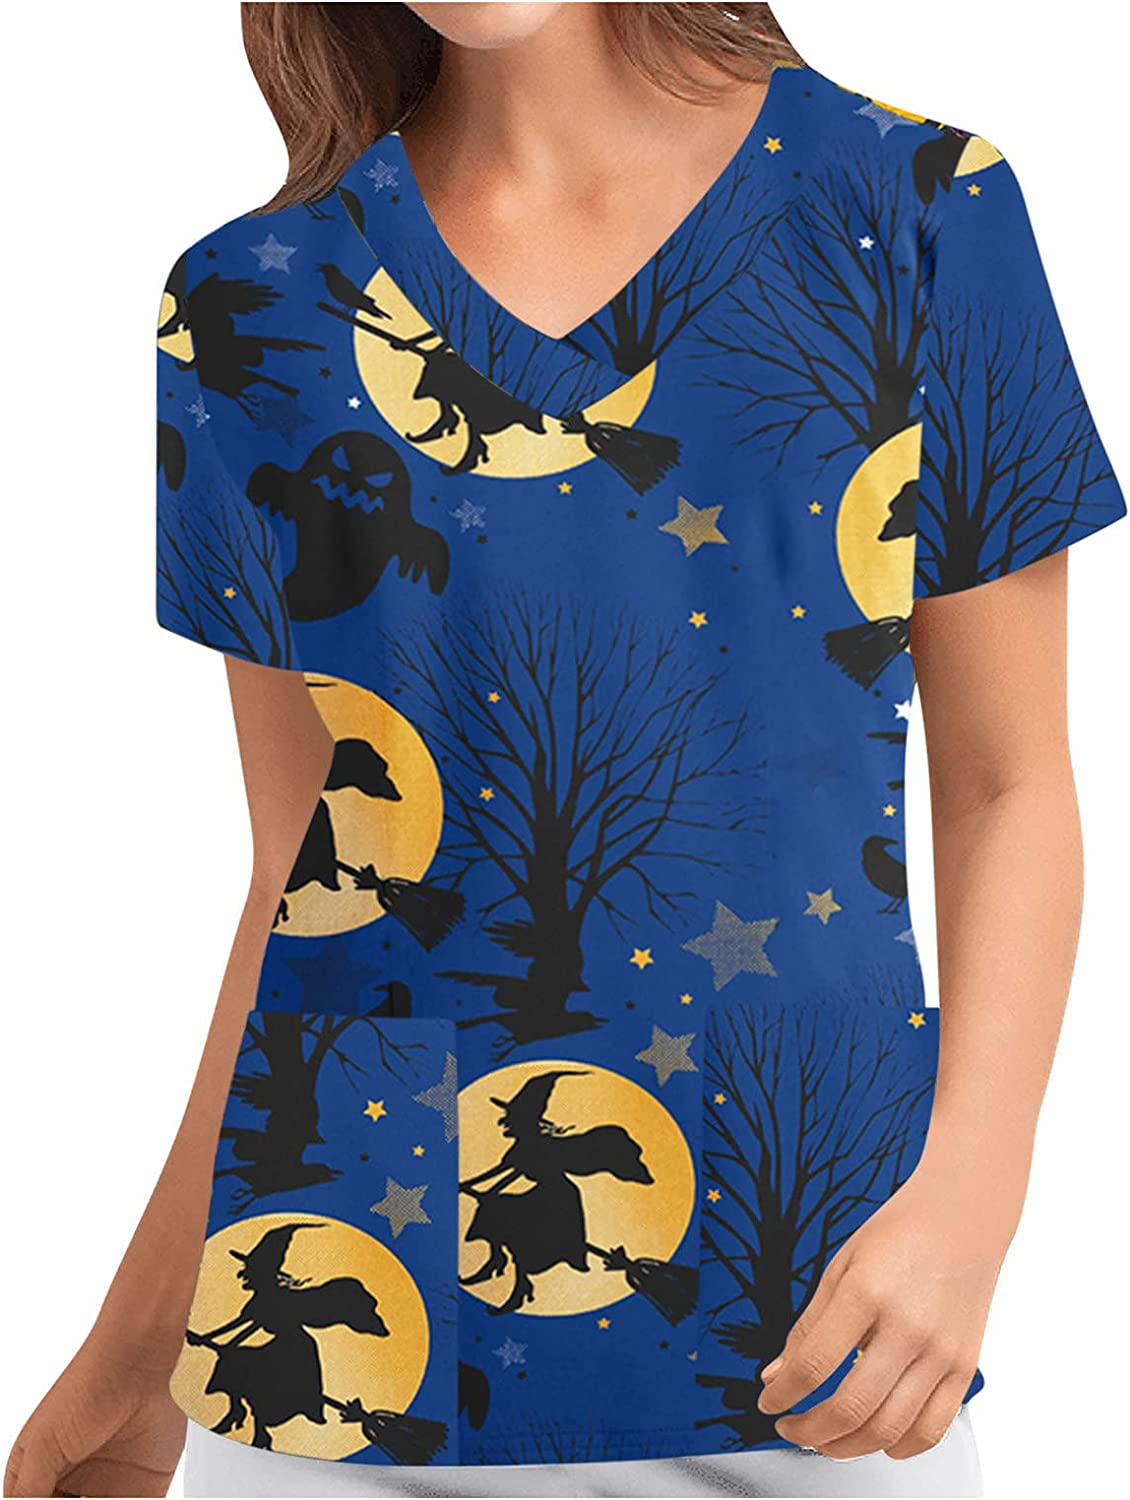 Women Short Sleeve Working Uniform Halloween with Pockets T Shirts V-Neck Comfy Blouses Tops